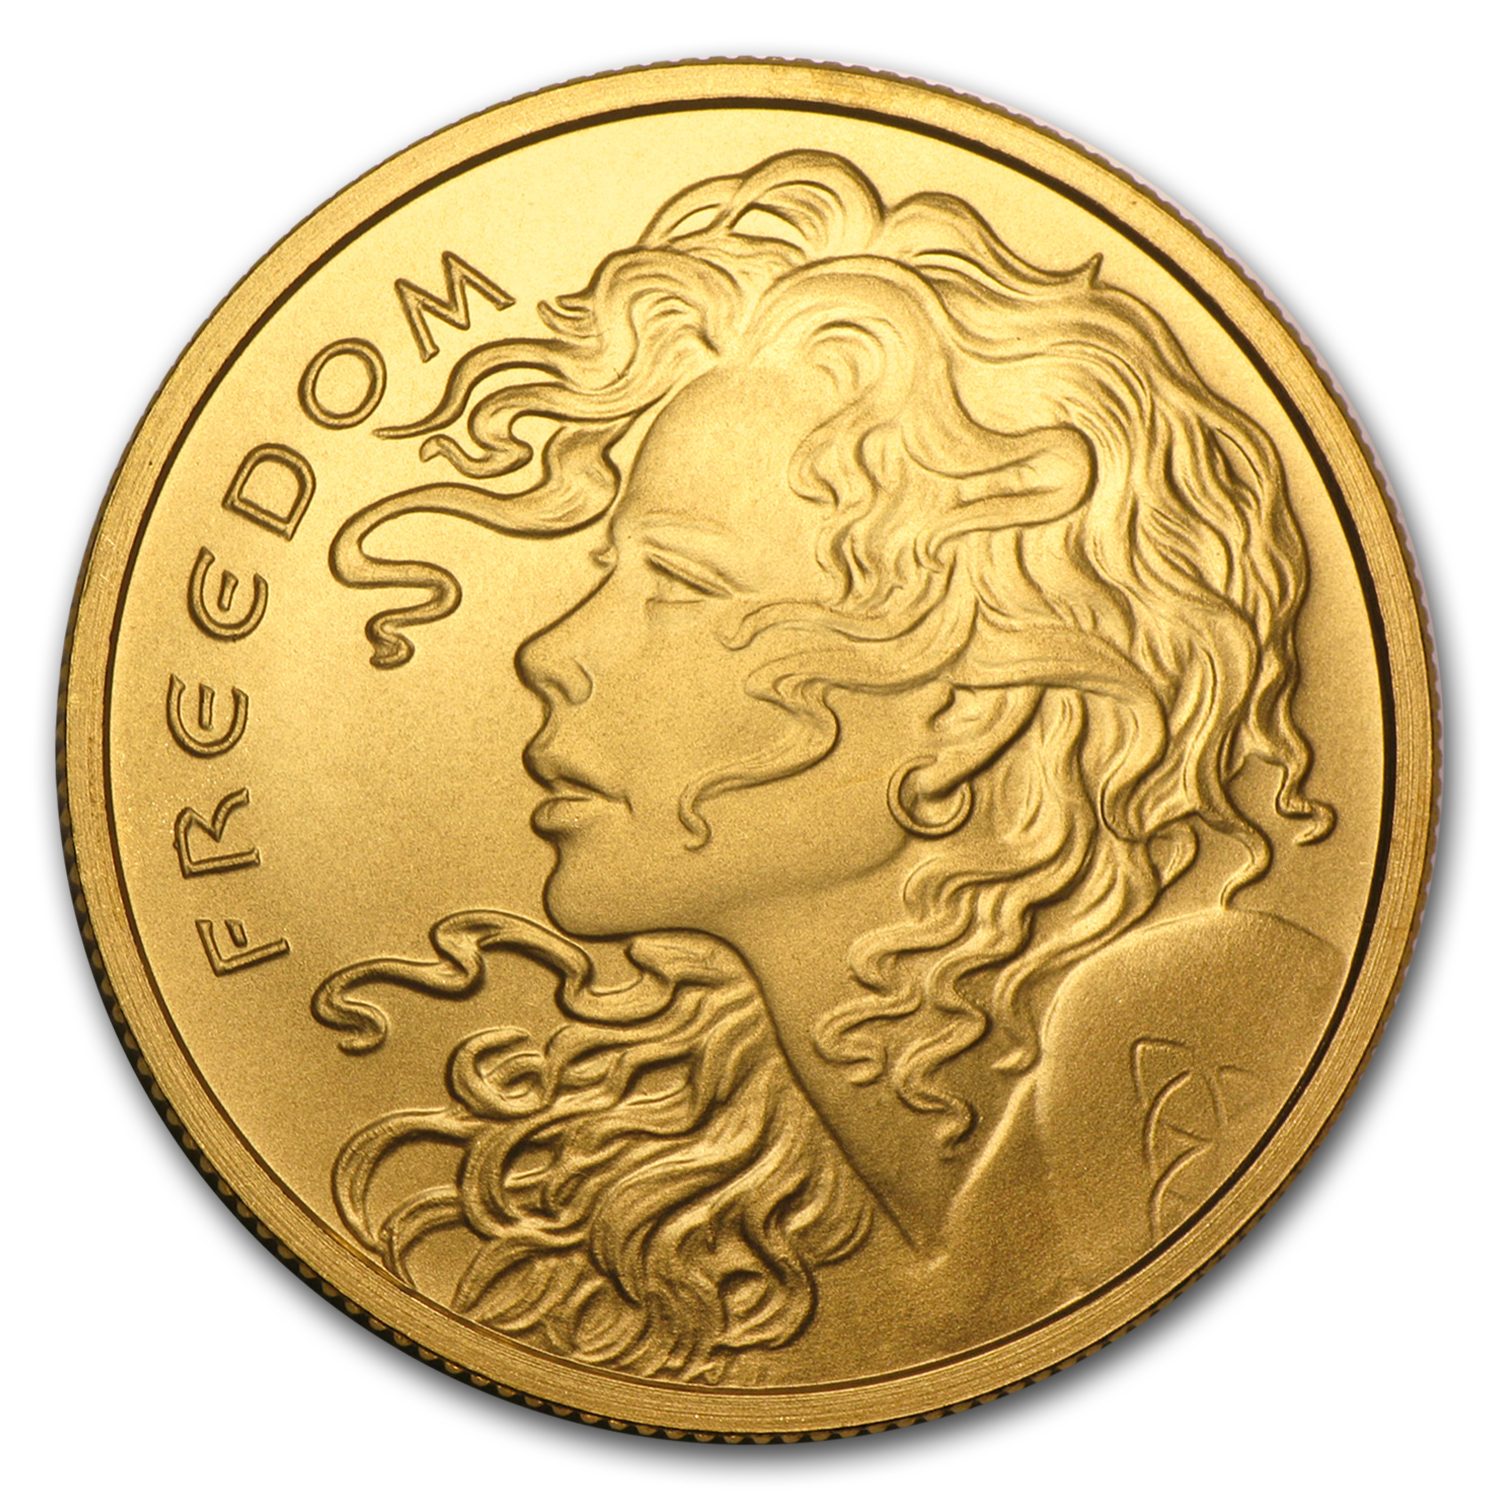 2015 1 oz Gold Round - Freedom Girl (w/Box & COA)